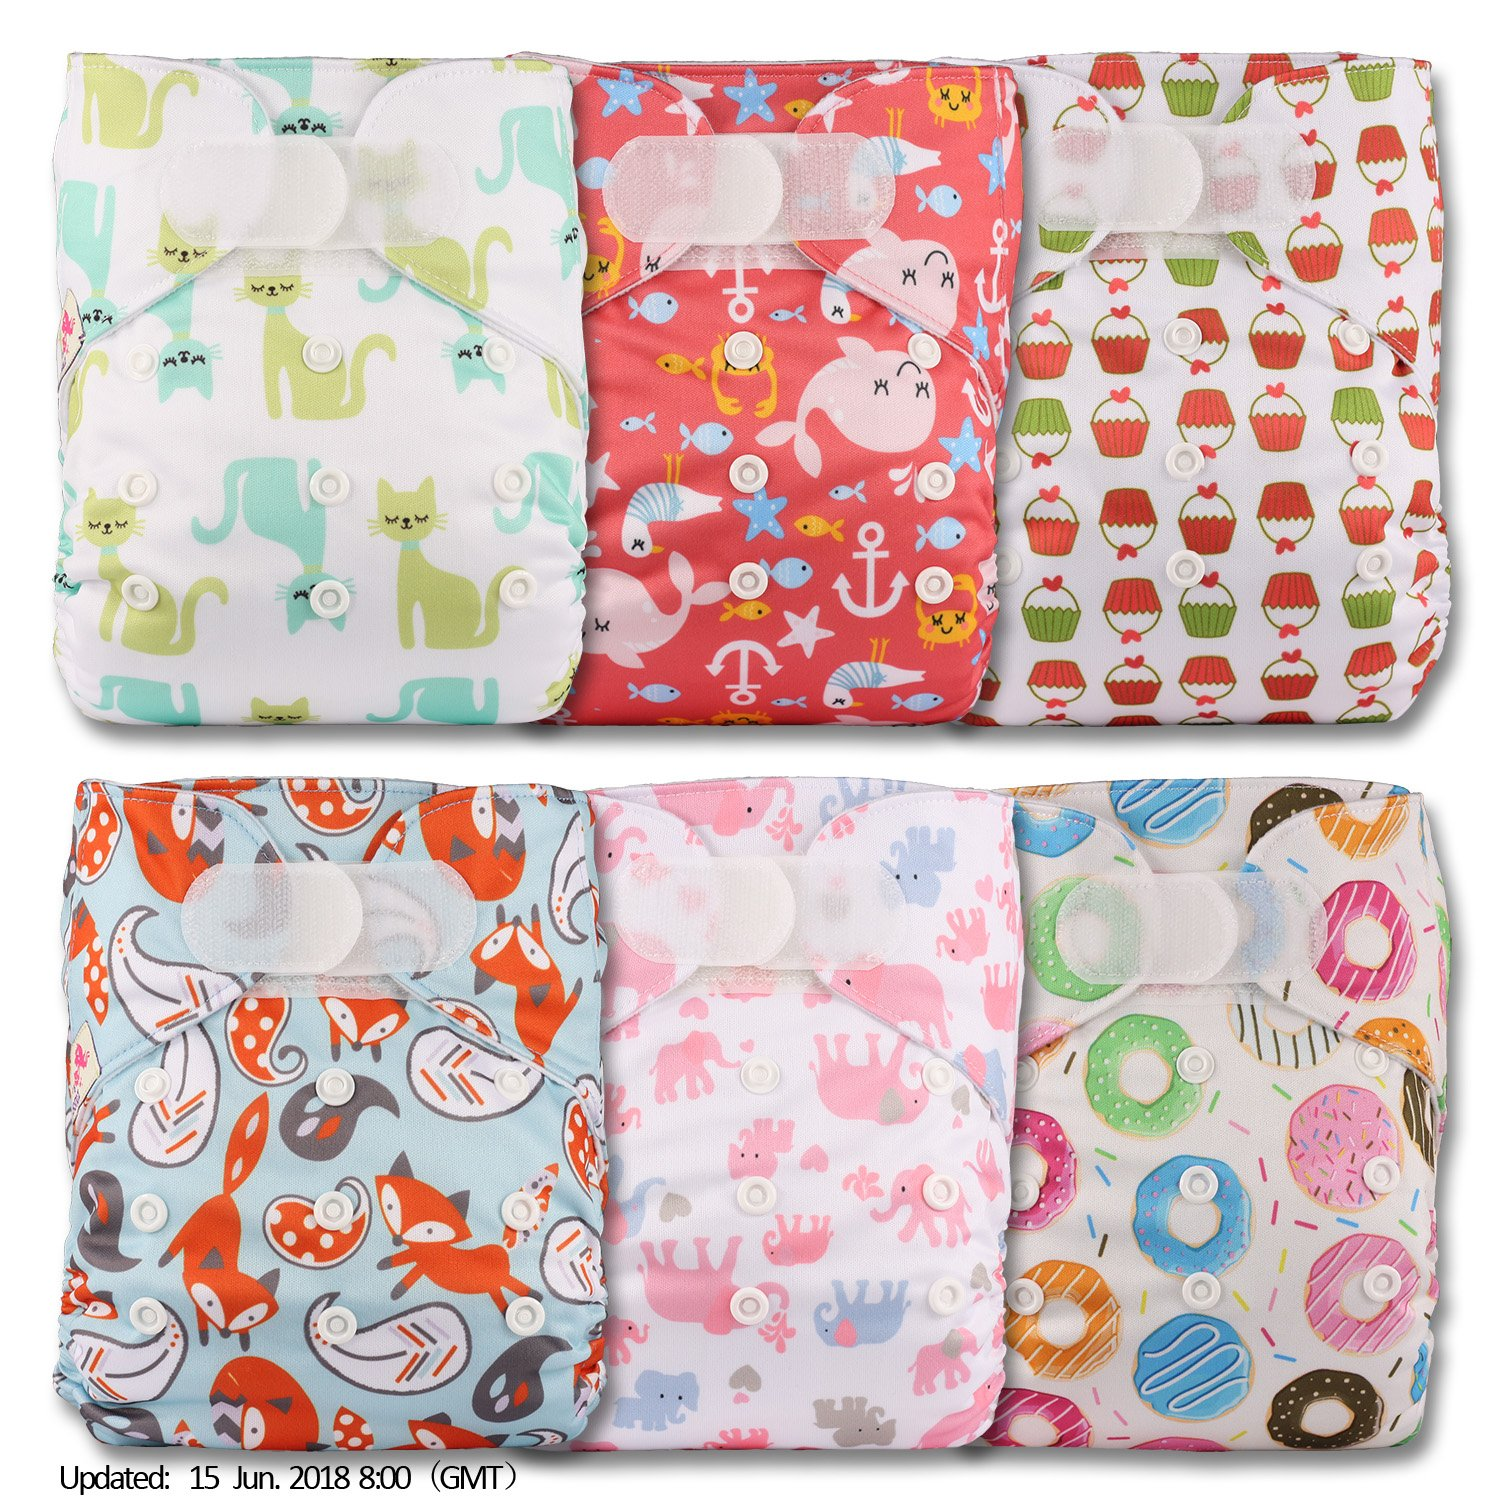 Littles & Bloomz, Reusable Pocket Cloth Nappy, Fastener: Hook-Loop, Set of 6, Patterns 601, Without Insert